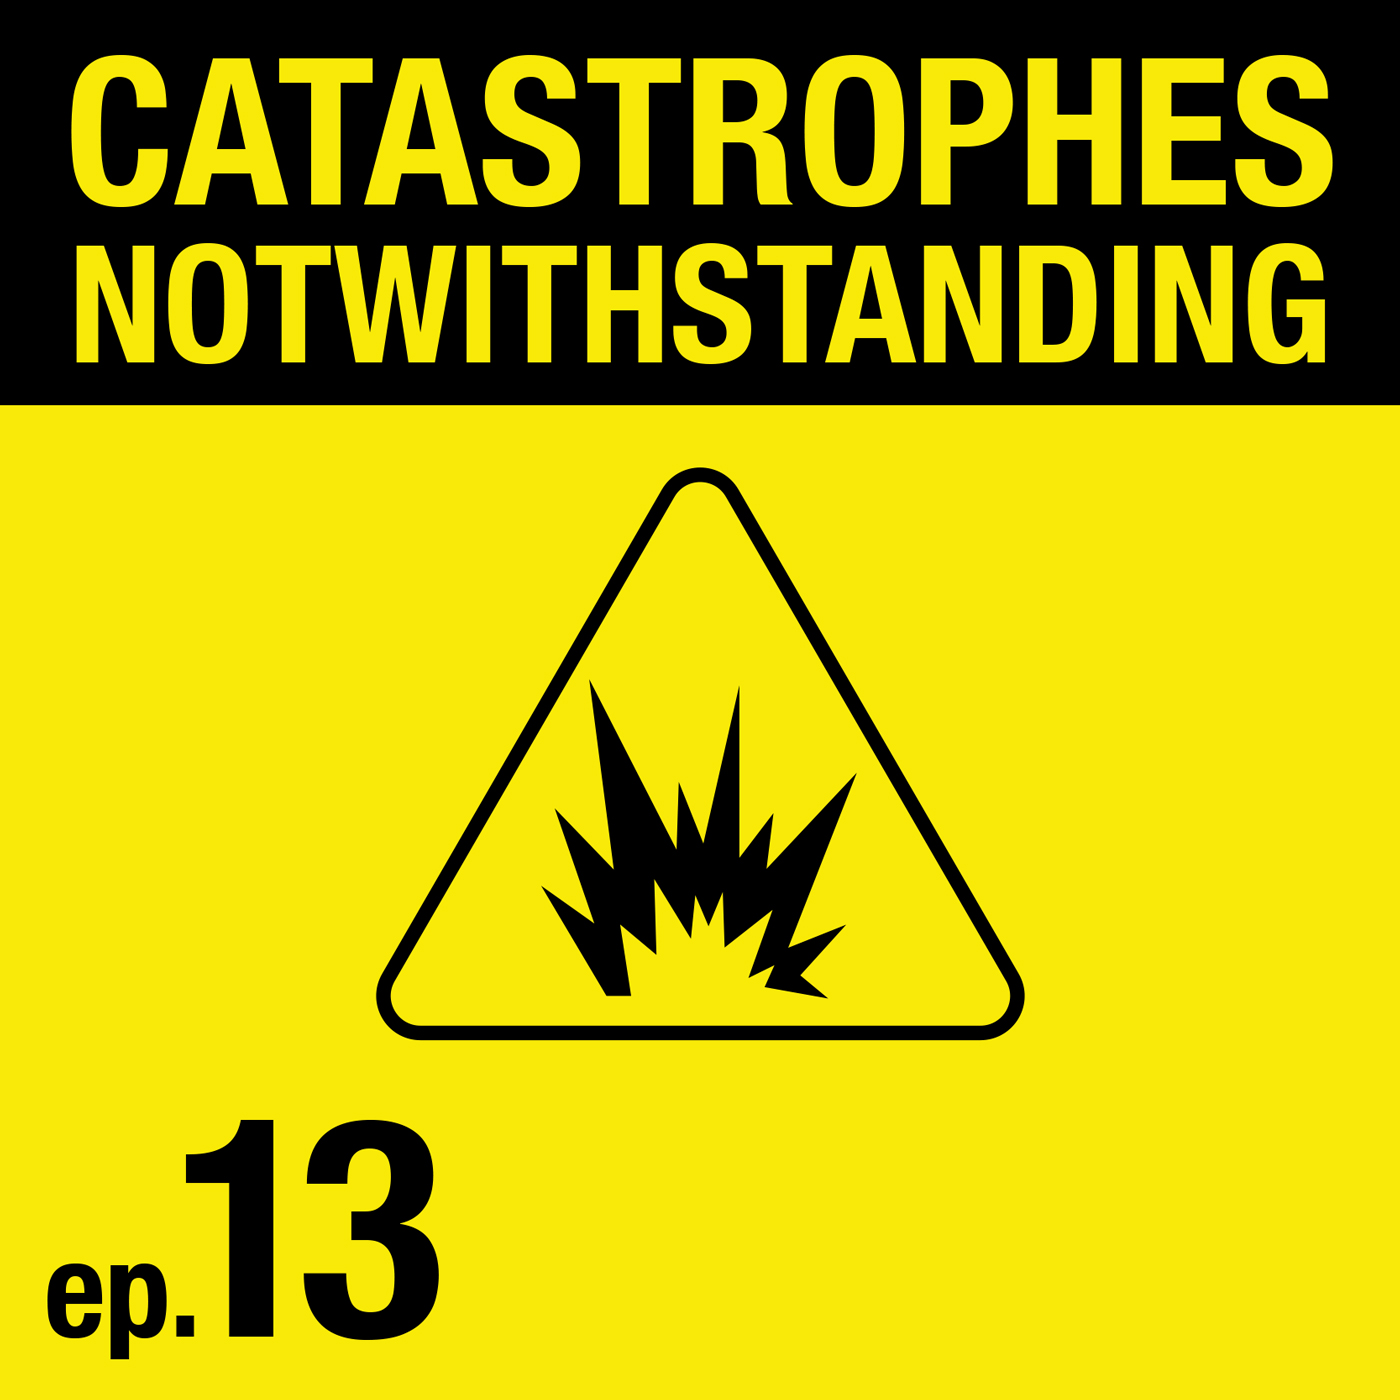 Cover Image of Catastrophes Notwithstanding Episode 13